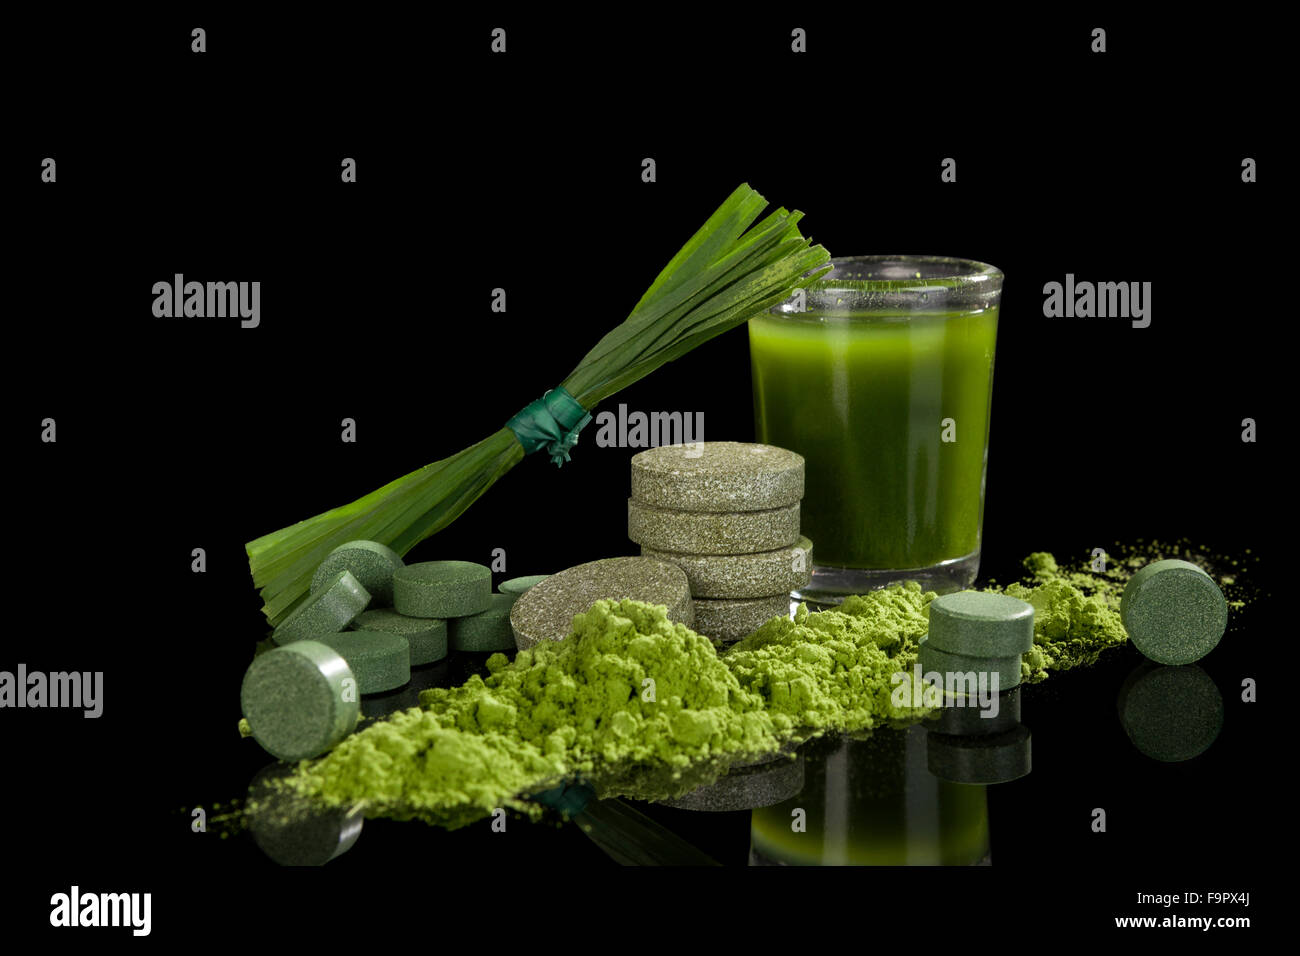 Alternative medicine. - Stock Image